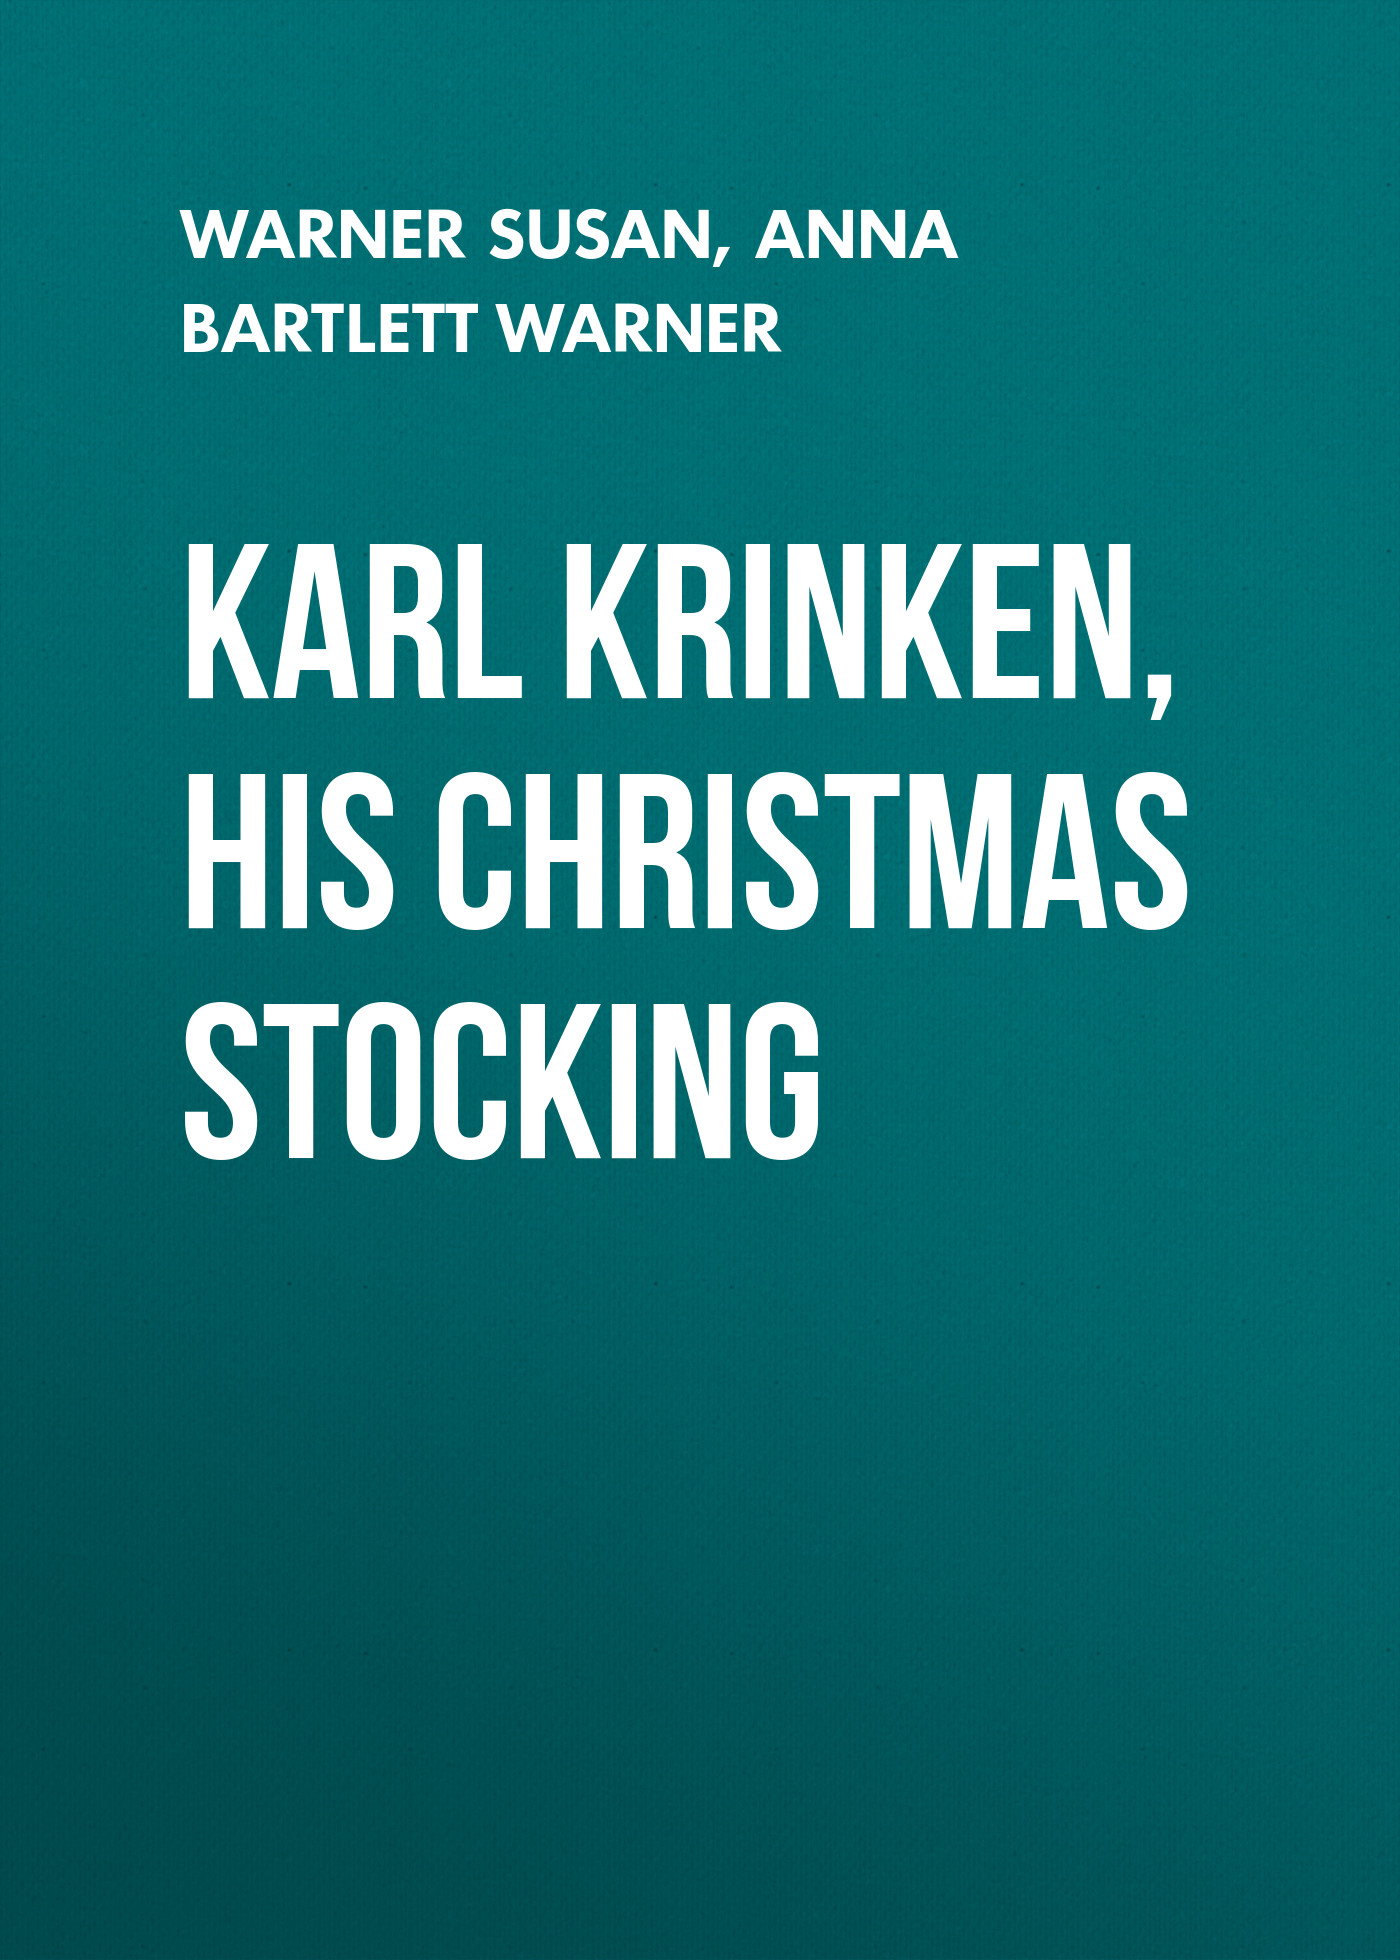 Warner Susan Karl Krinken, His Christmas Stocking недорого